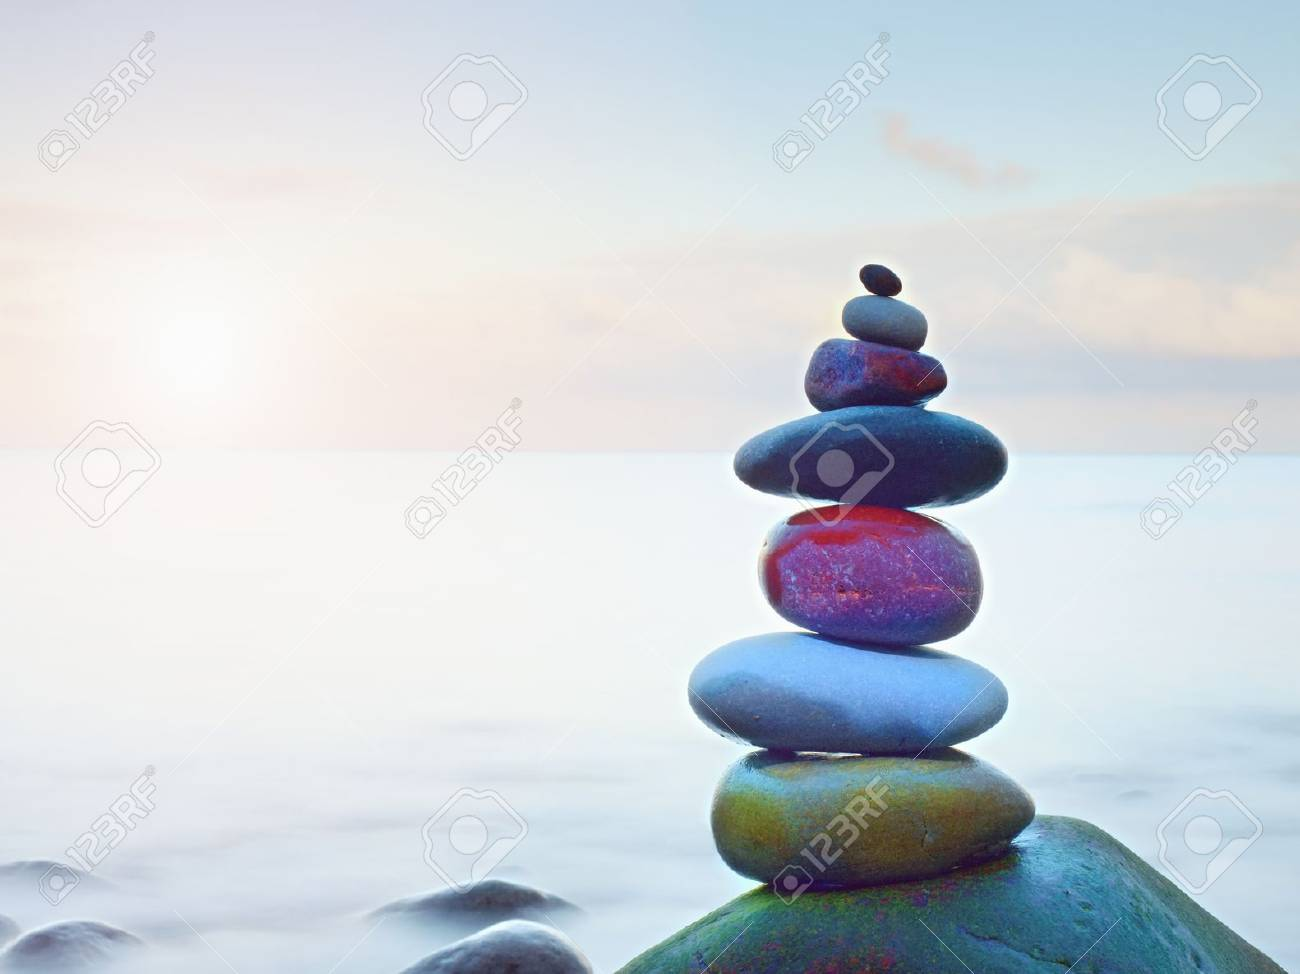 Balanced stone pyramide on shore of blue water of ocean. Blue sky in water level mirror. Poor lighting conditions. - 82196436